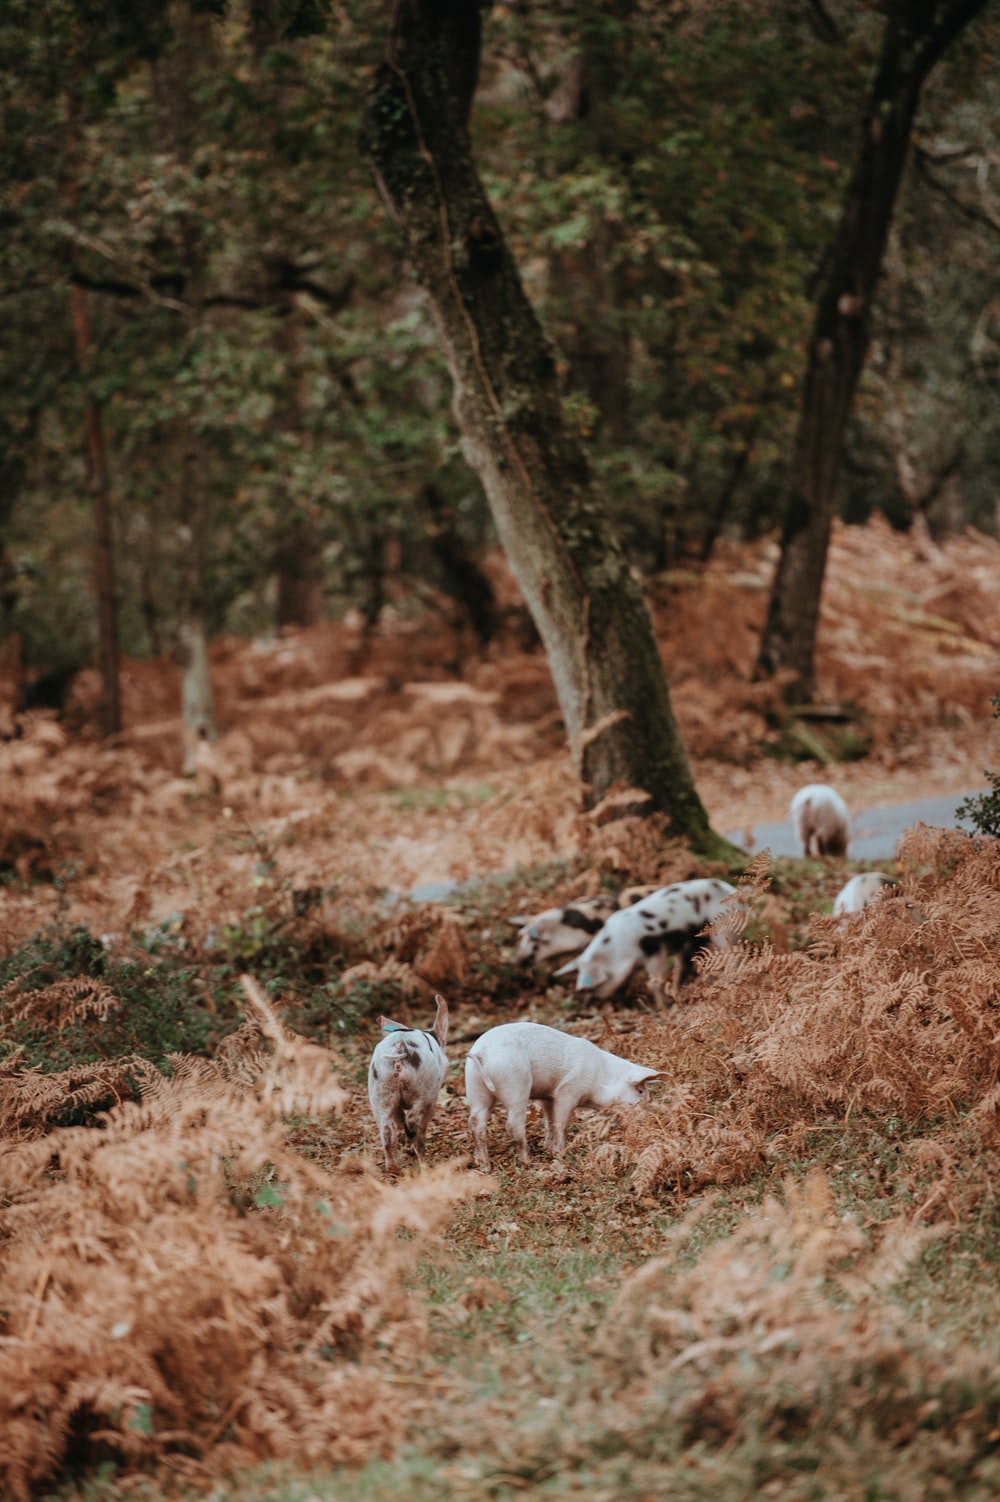 swine of pigs surrounded by tall trees